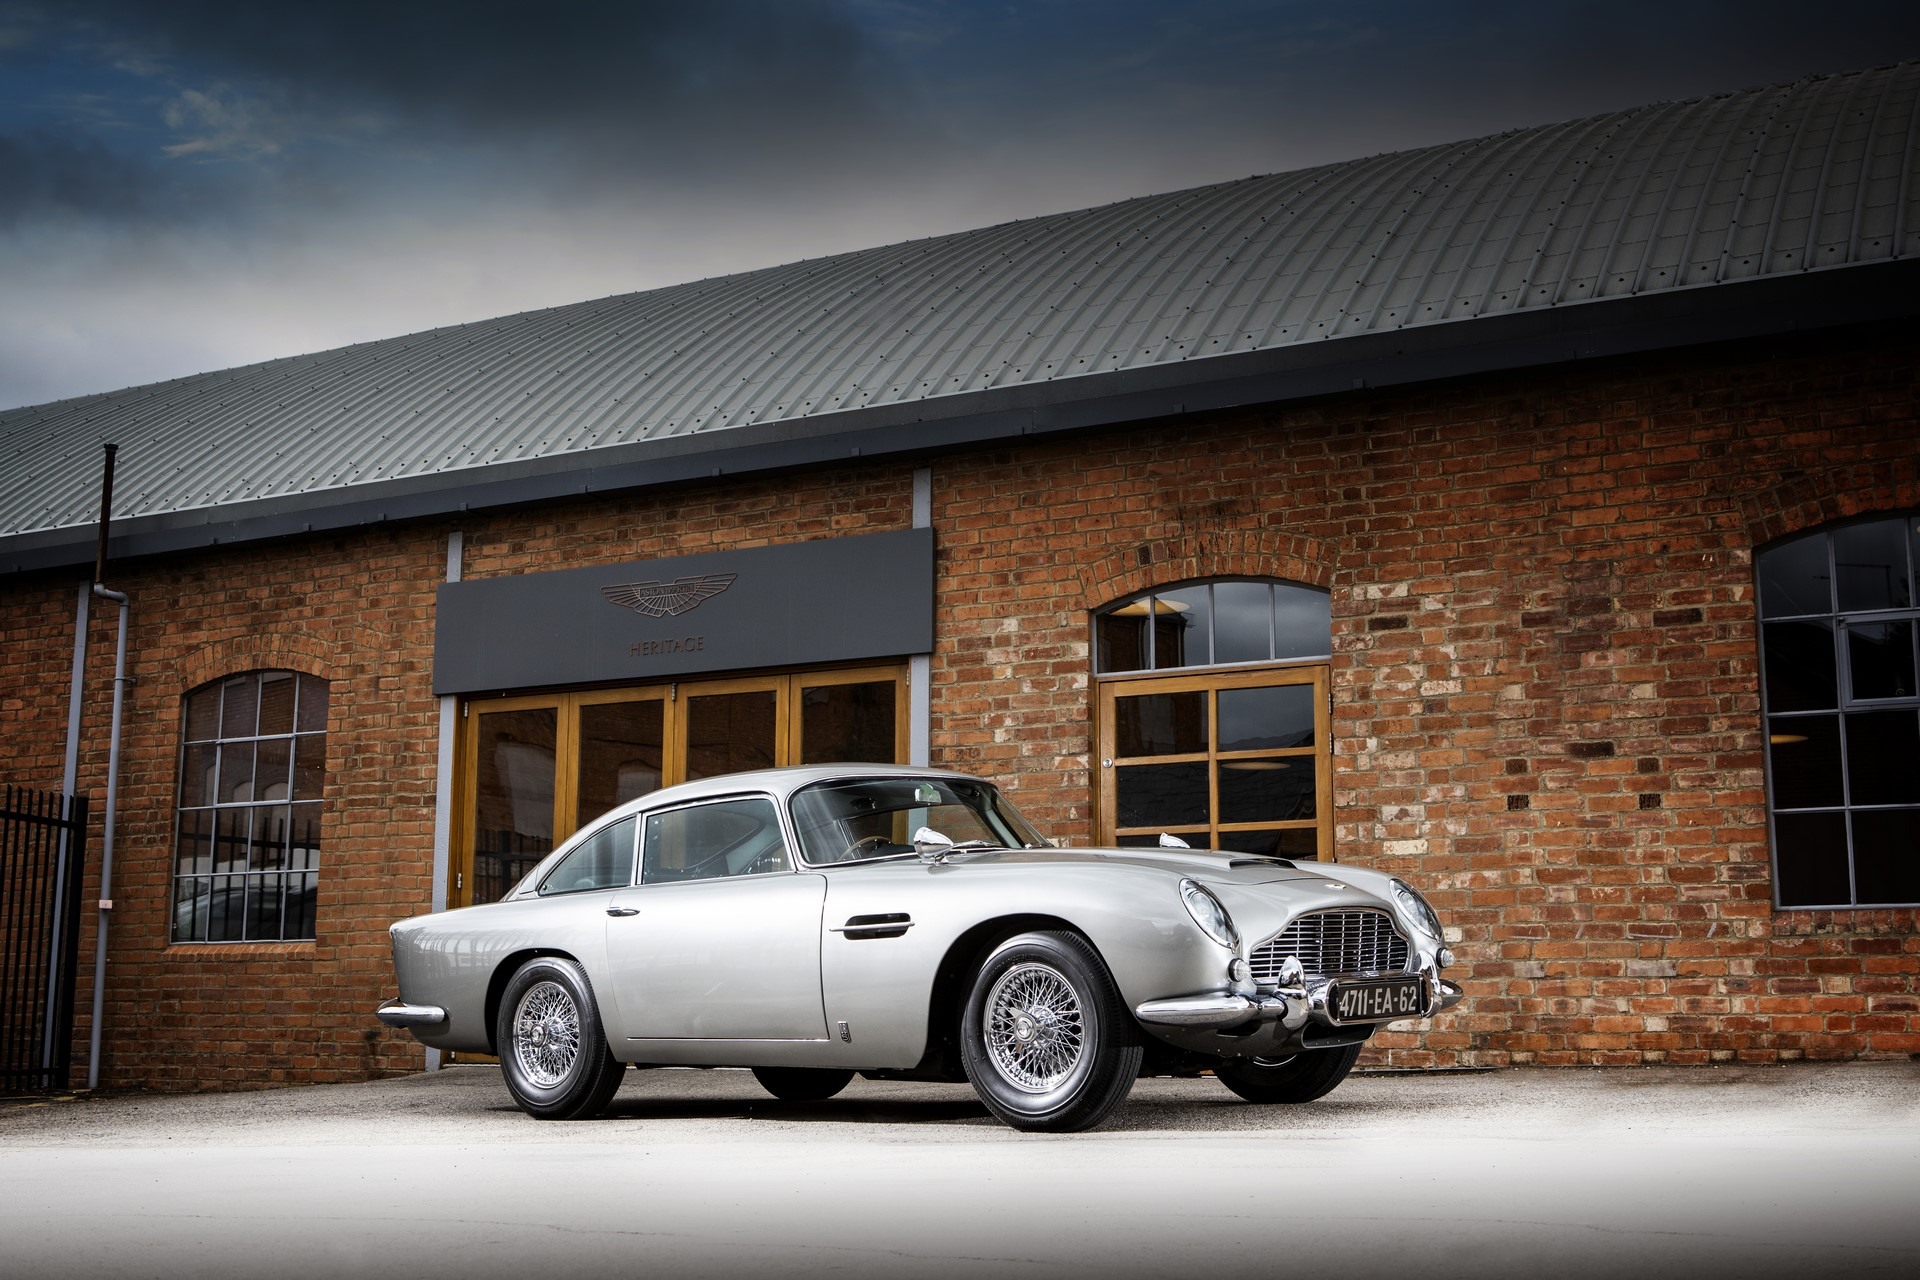 1965-Aston-Martin-DB5-Bond-Car-Simon-Clay-c-2019-Courtesy-of-RM-Sothebys